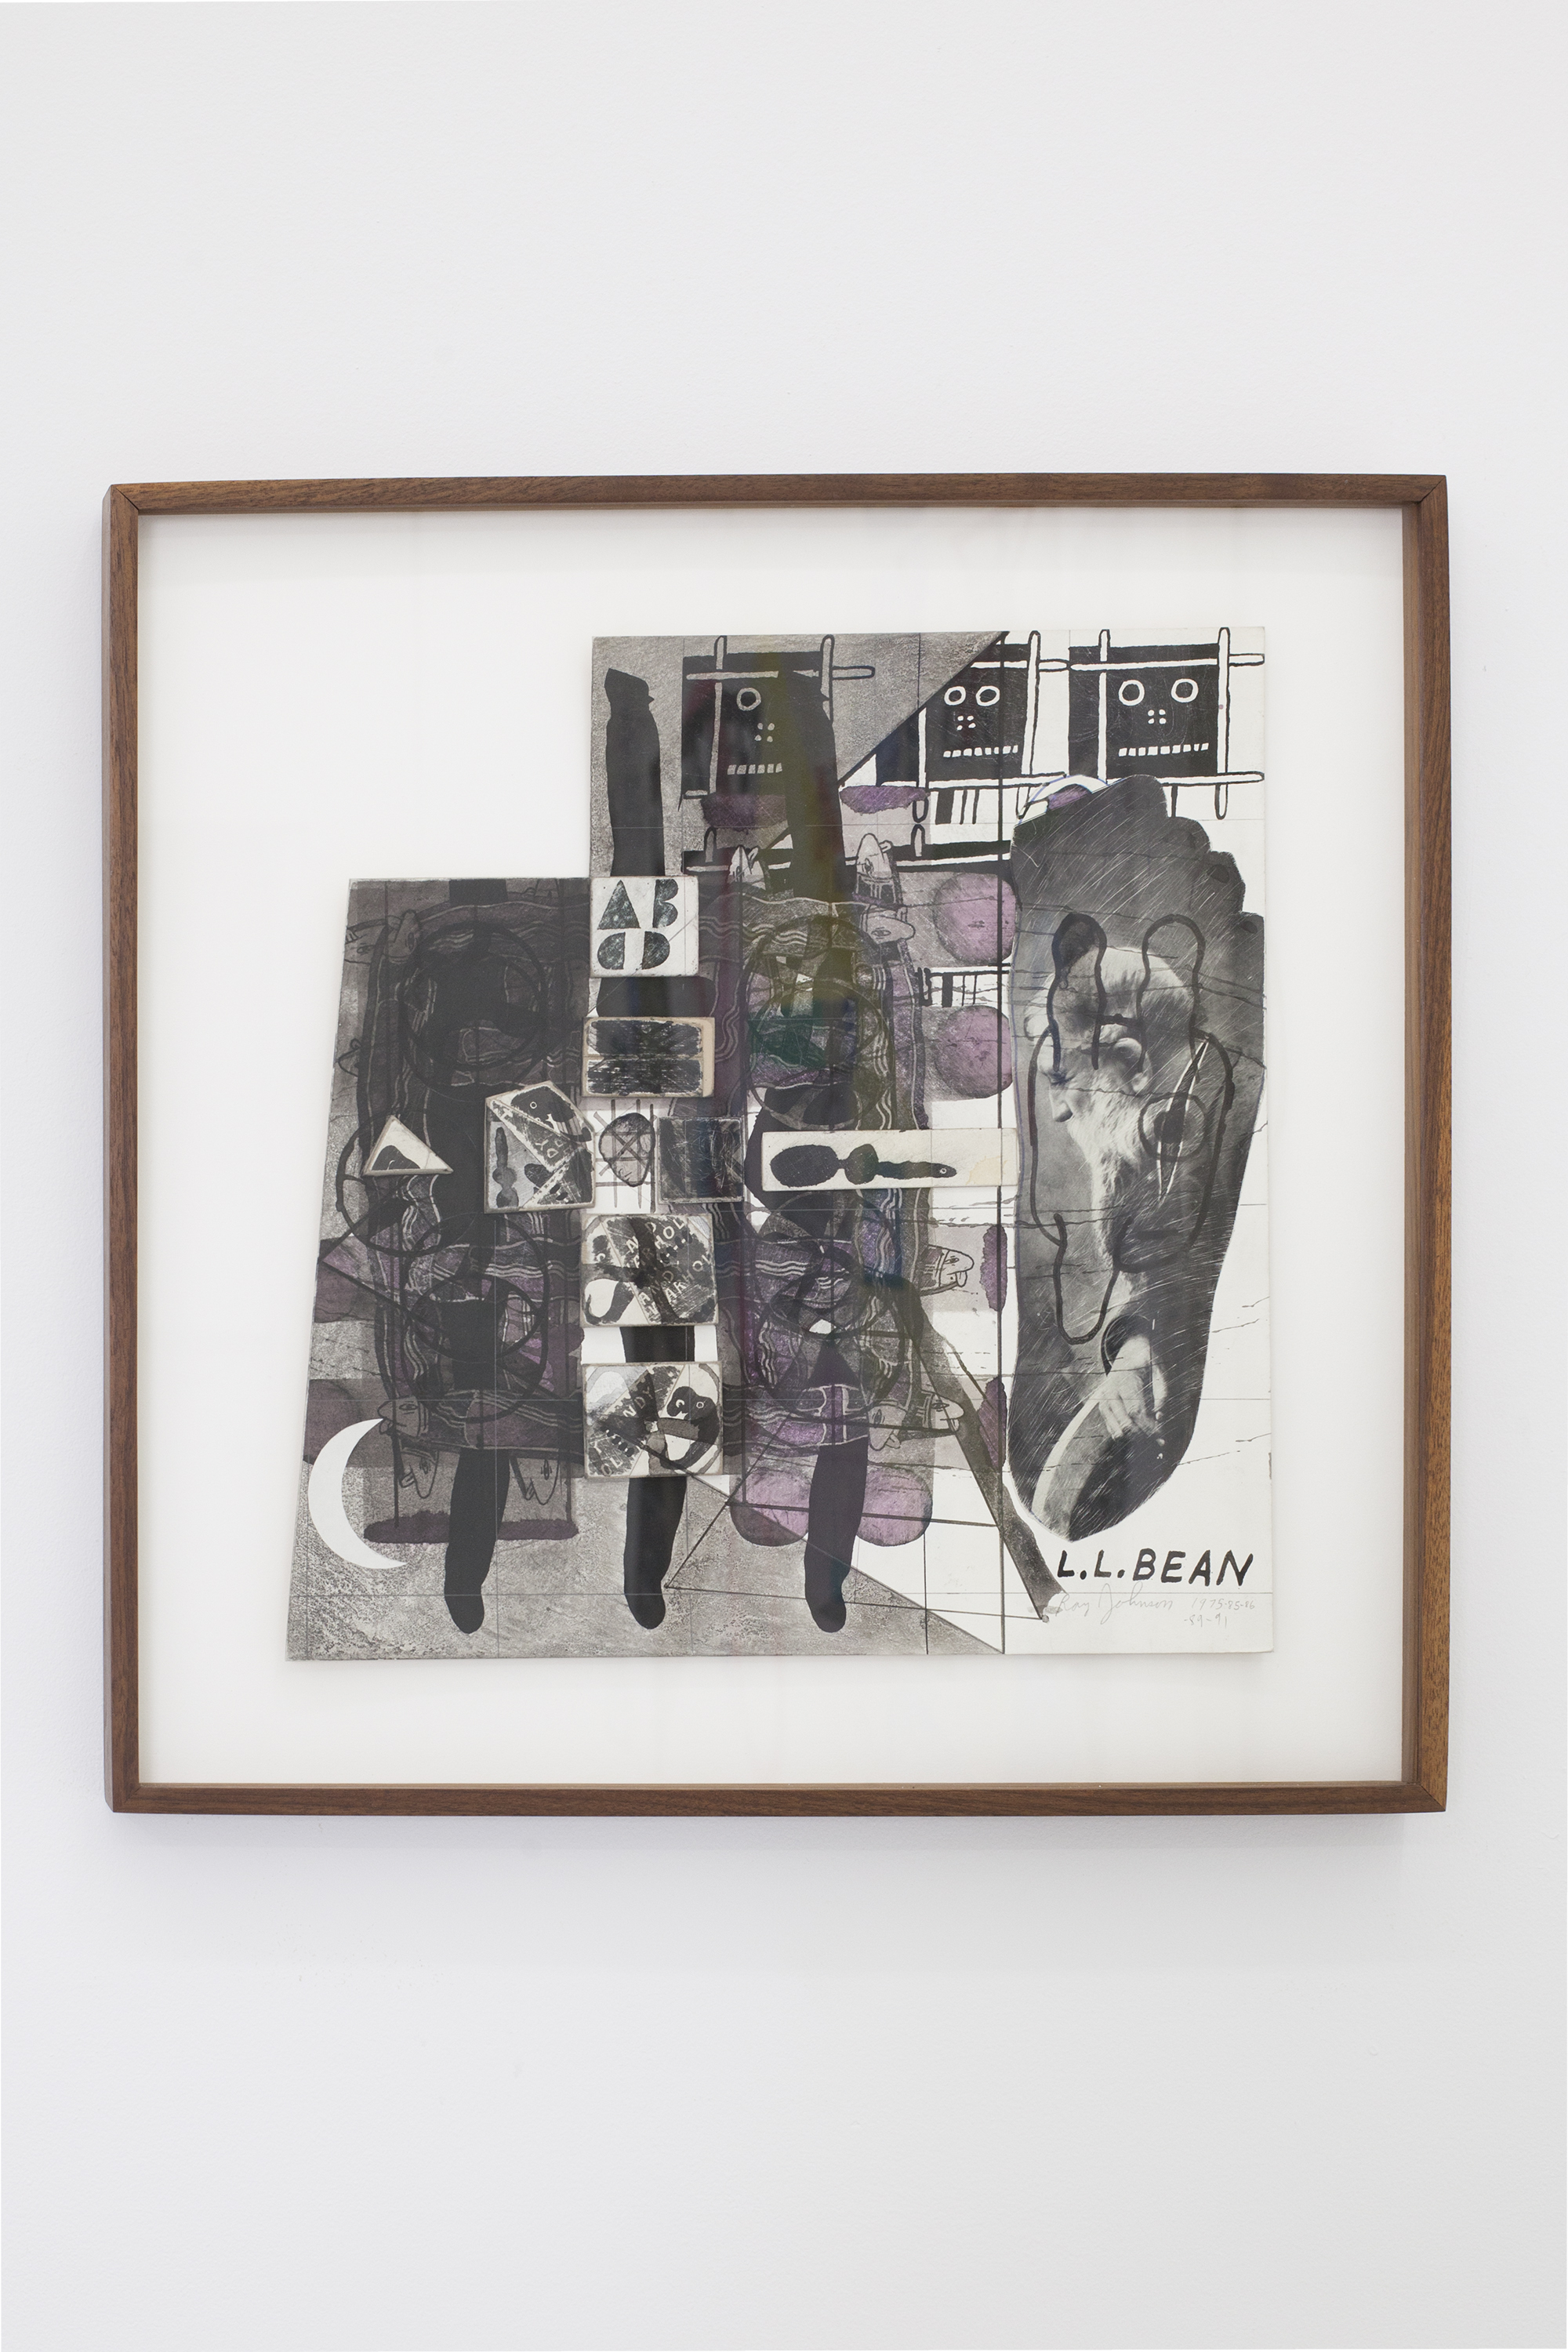 Ray Johnson Untitled (L.L. Bean), 1975-1991 Collage on illustration board © Ray Johnson Estate, Courtesy Richard L. Feigen & Co.